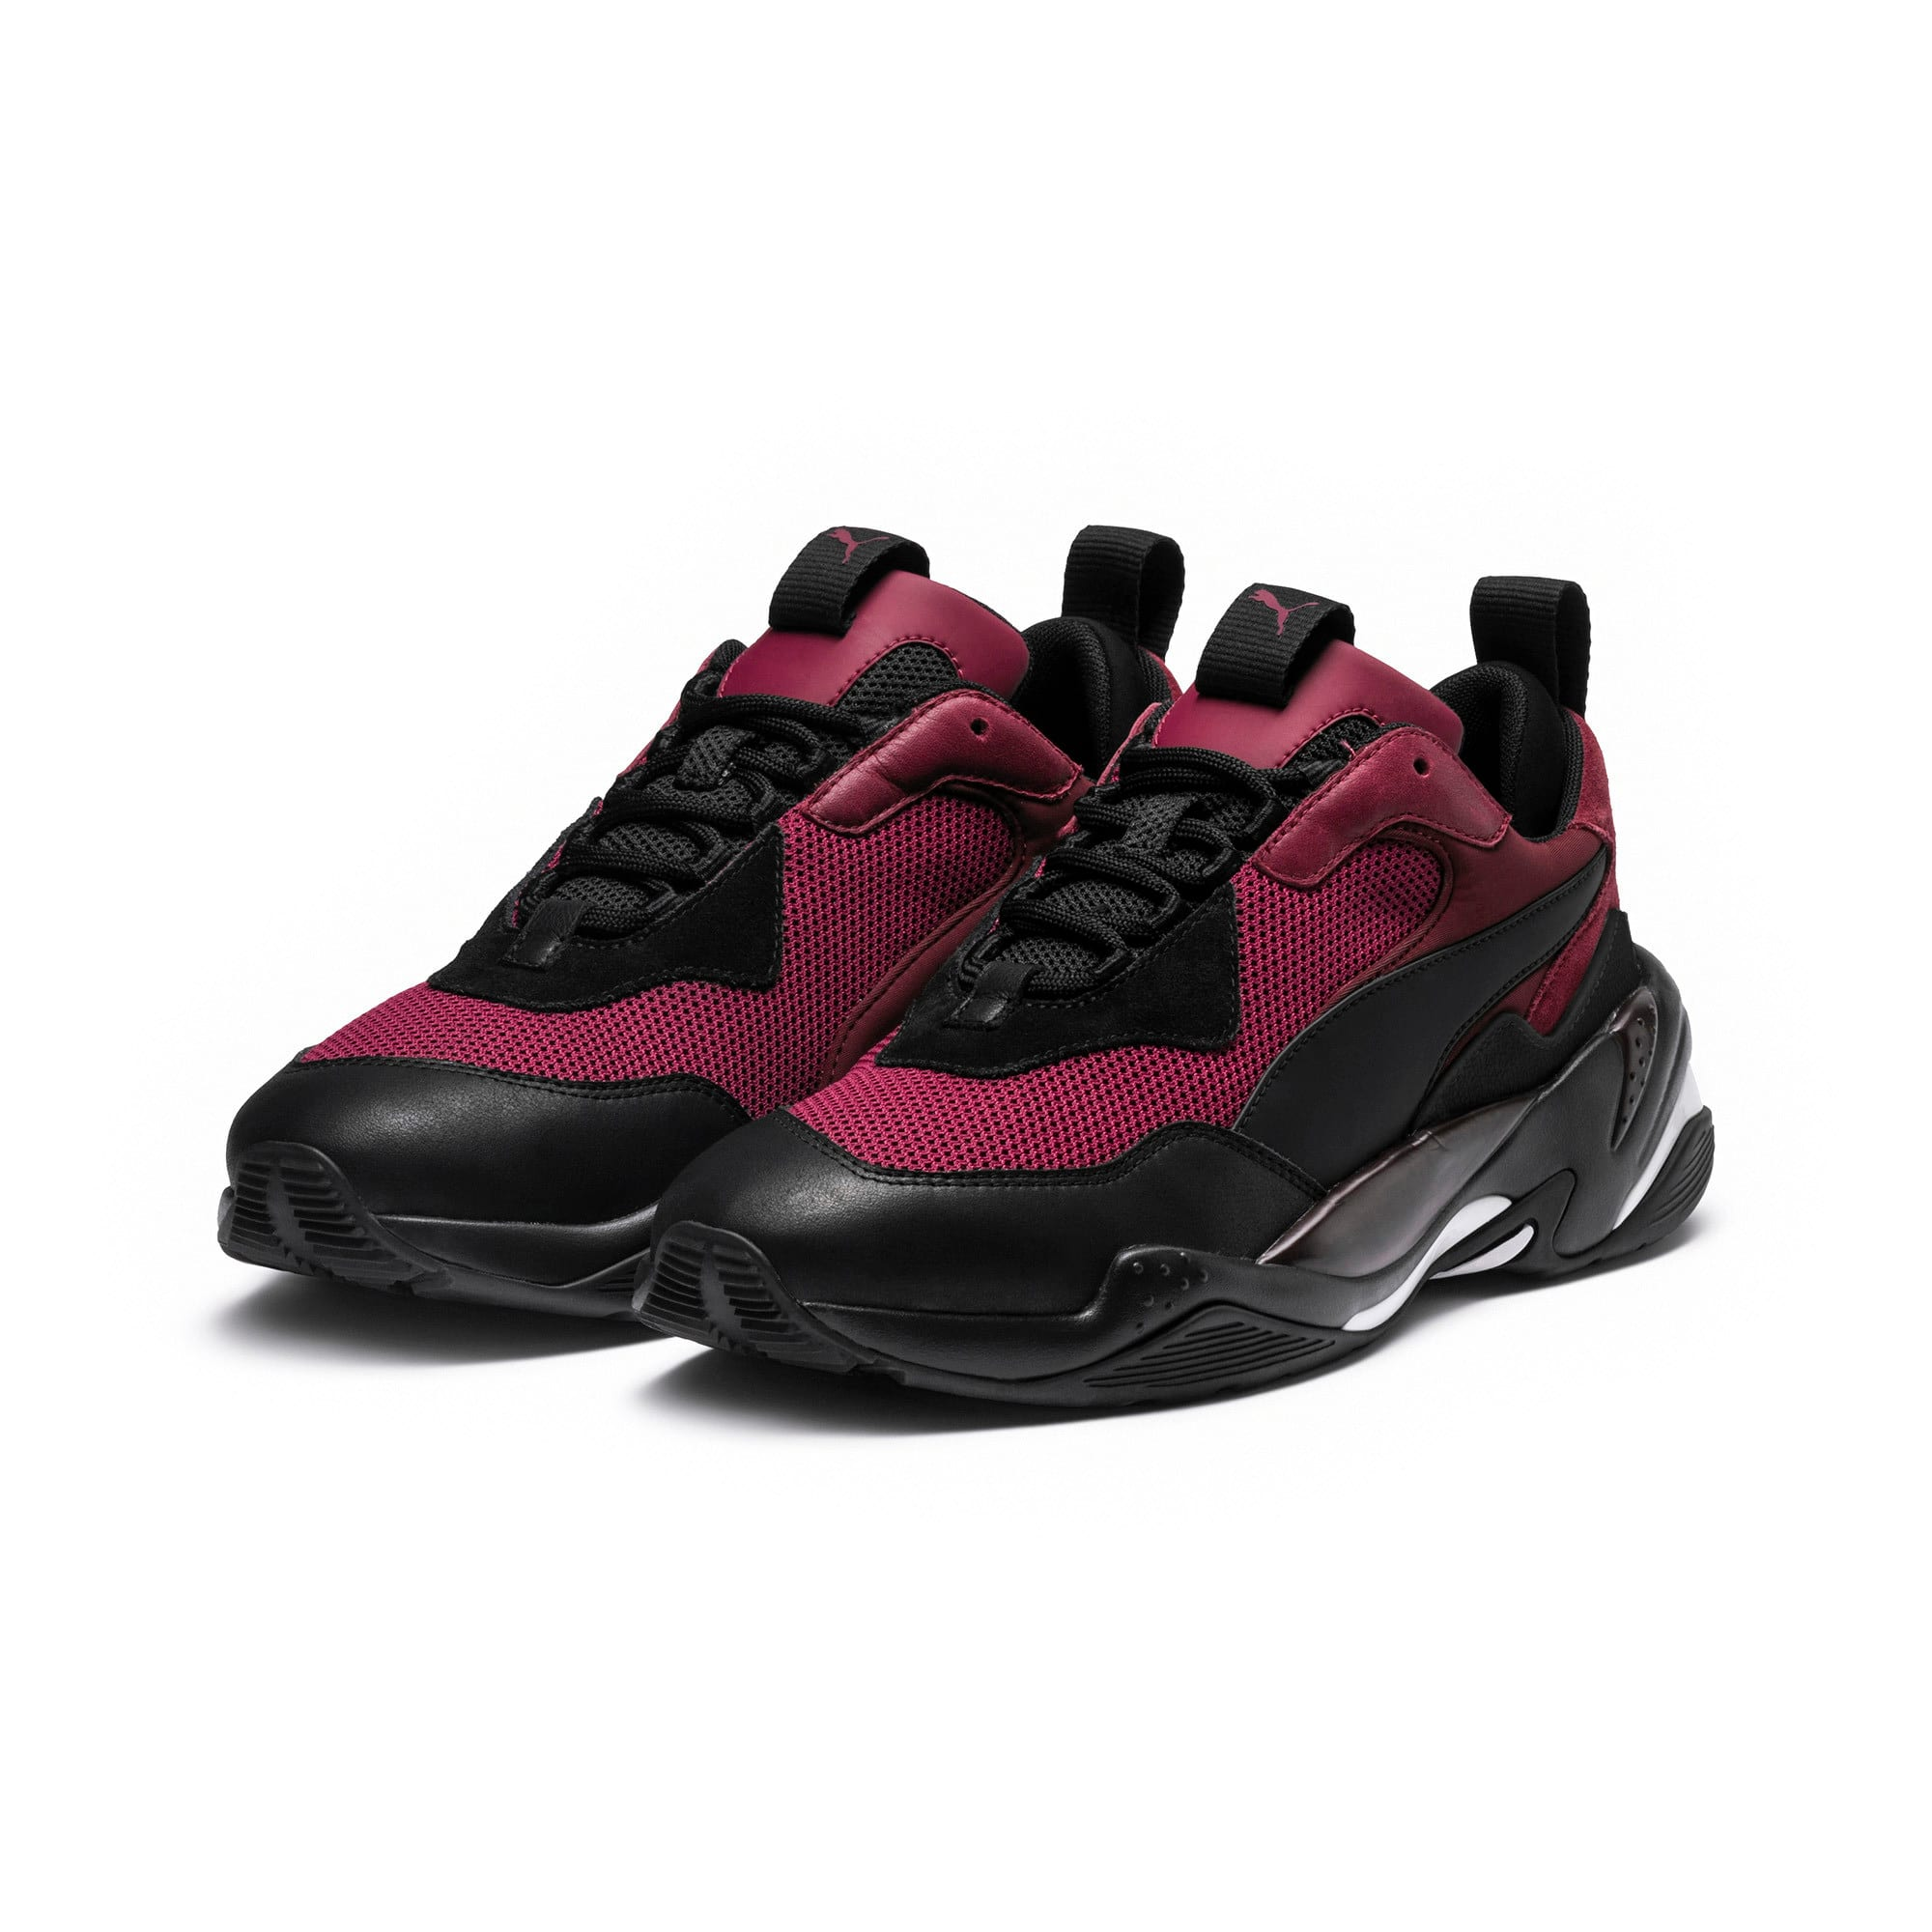 Thumbnail 2 of Thunder Spectra Sneakers, Rhododendron-P Black-T Port, medium